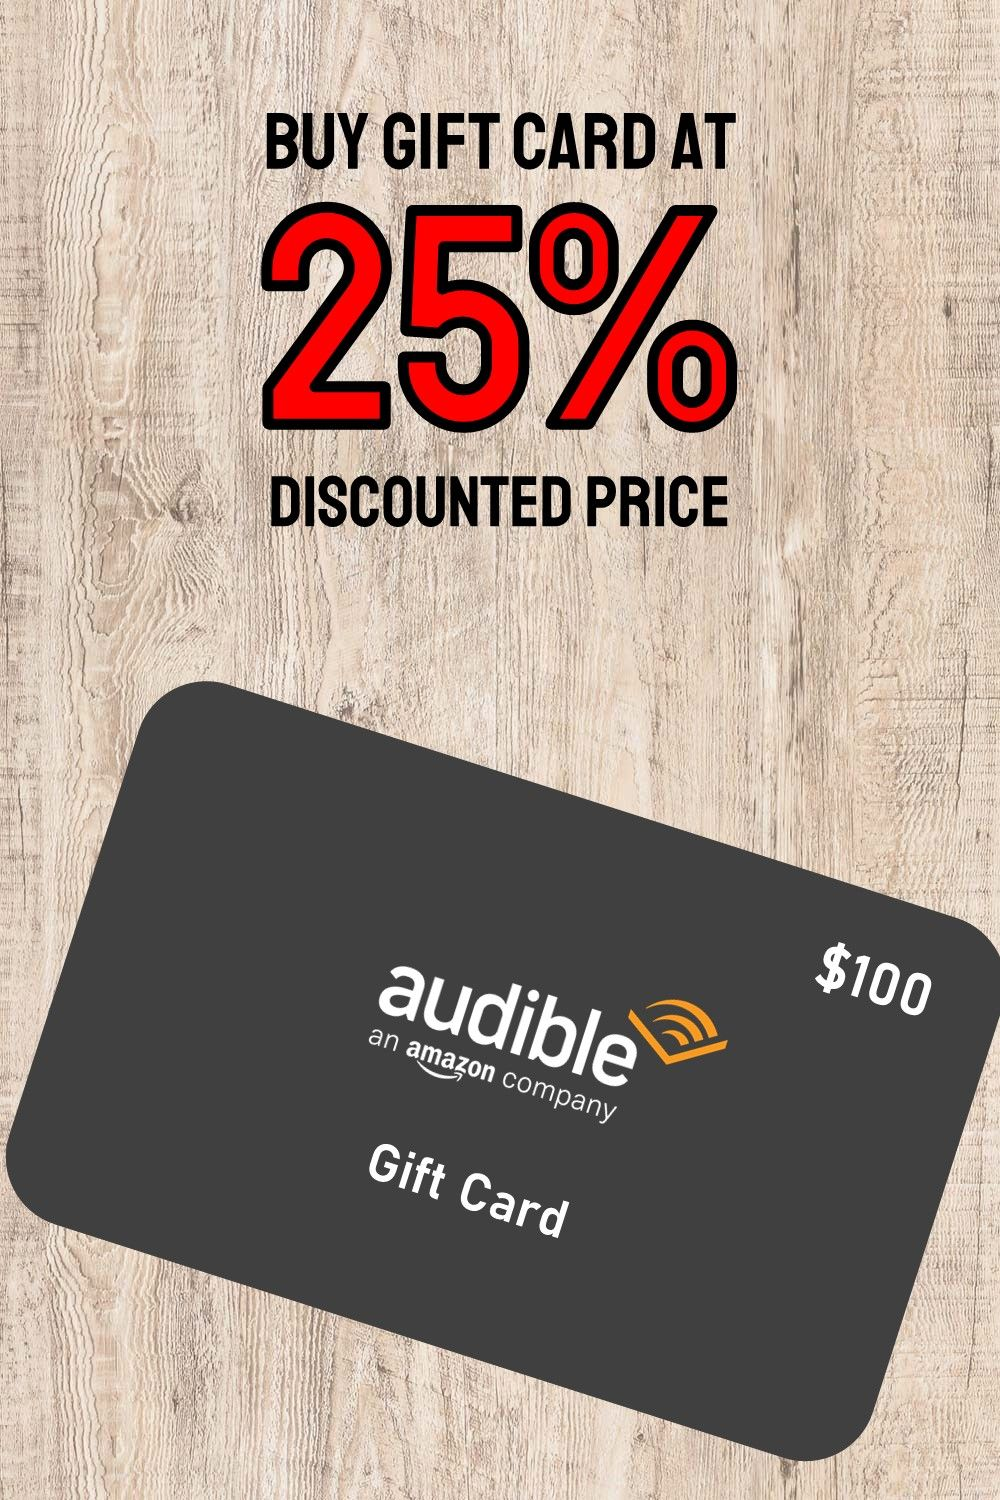 Buy Audible Gift Card At 25 Discounted Price Buy Gift Cards Buy Gift Cards Online Buying Gifts